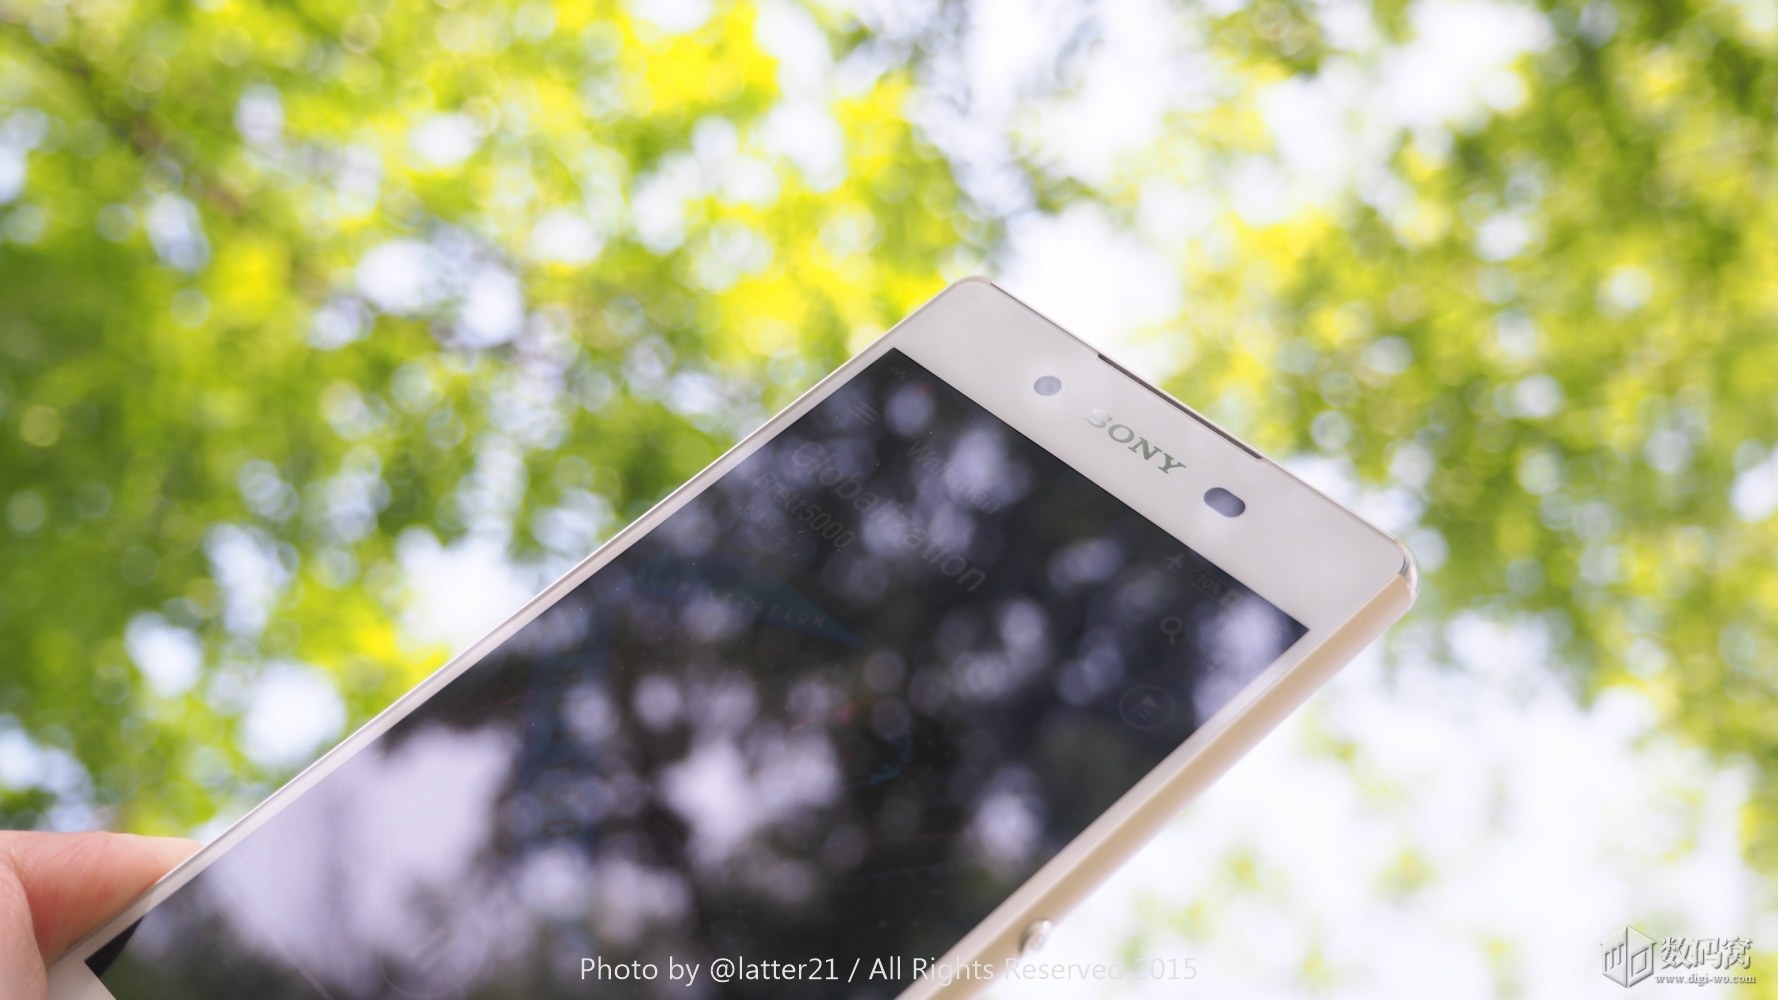 White Xperia Z3+ 1080p display